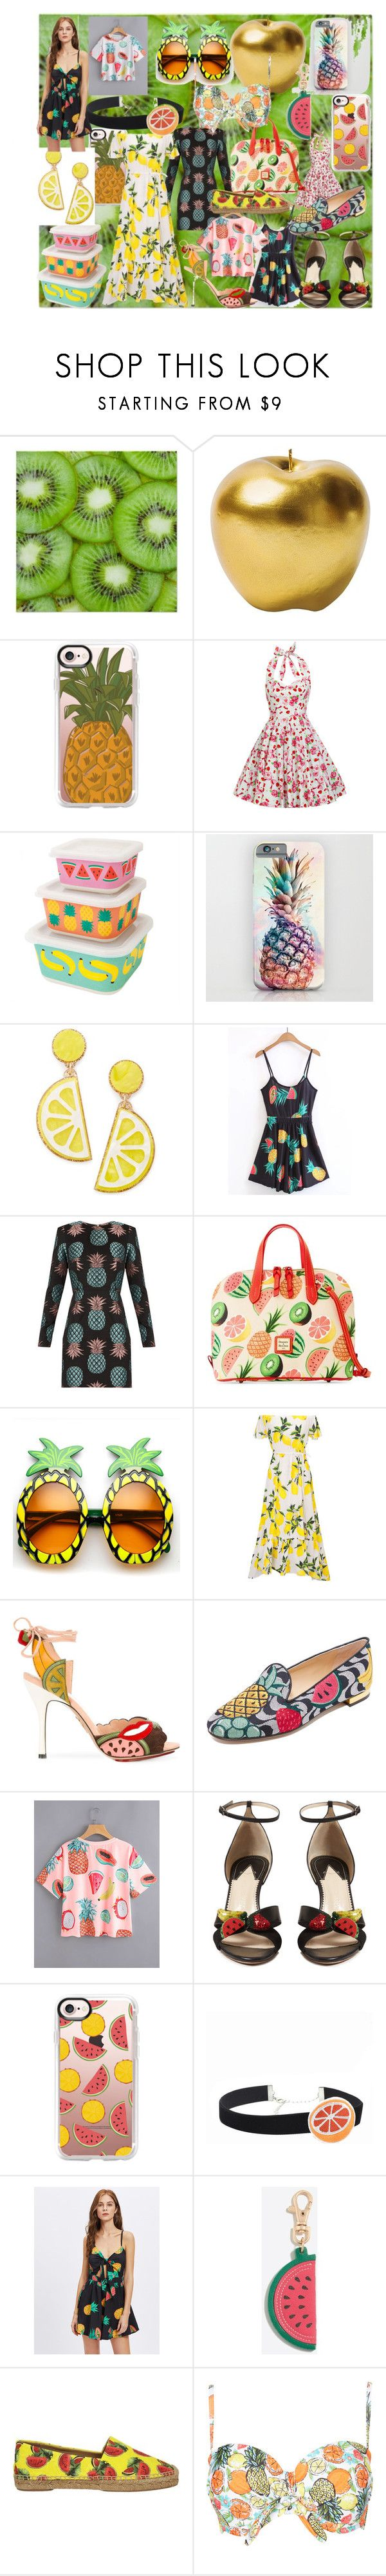 """""""Fruits"""" by andieok on Polyvore featuring Bitossi, Casetify, Celebrate Shop, House of Holland, Dooney & Bourke, WithChic, Charlotte Olympia, Altuzarra, Dolce&Gabbana and fruit"""